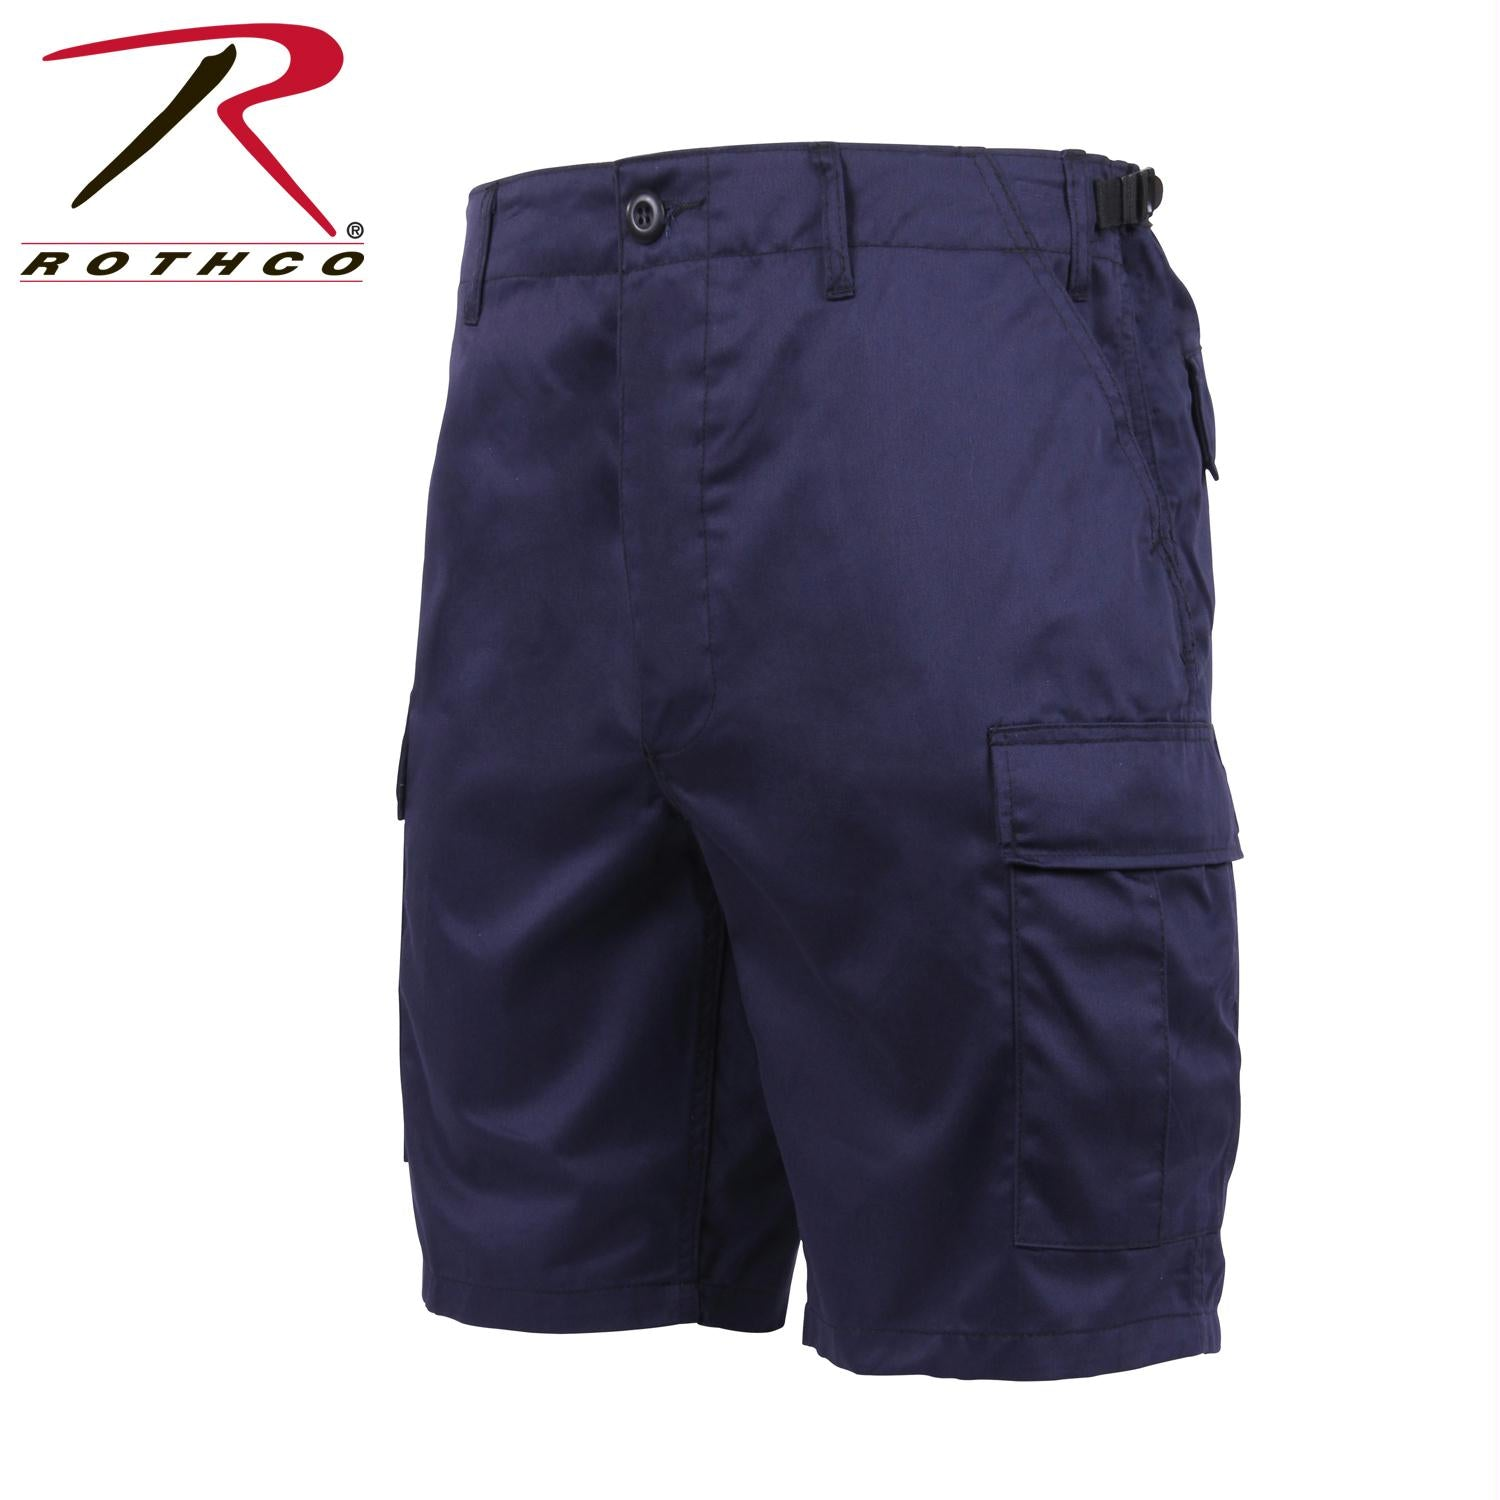 Rothco BDU Shorts - Navy Blue / 4XL